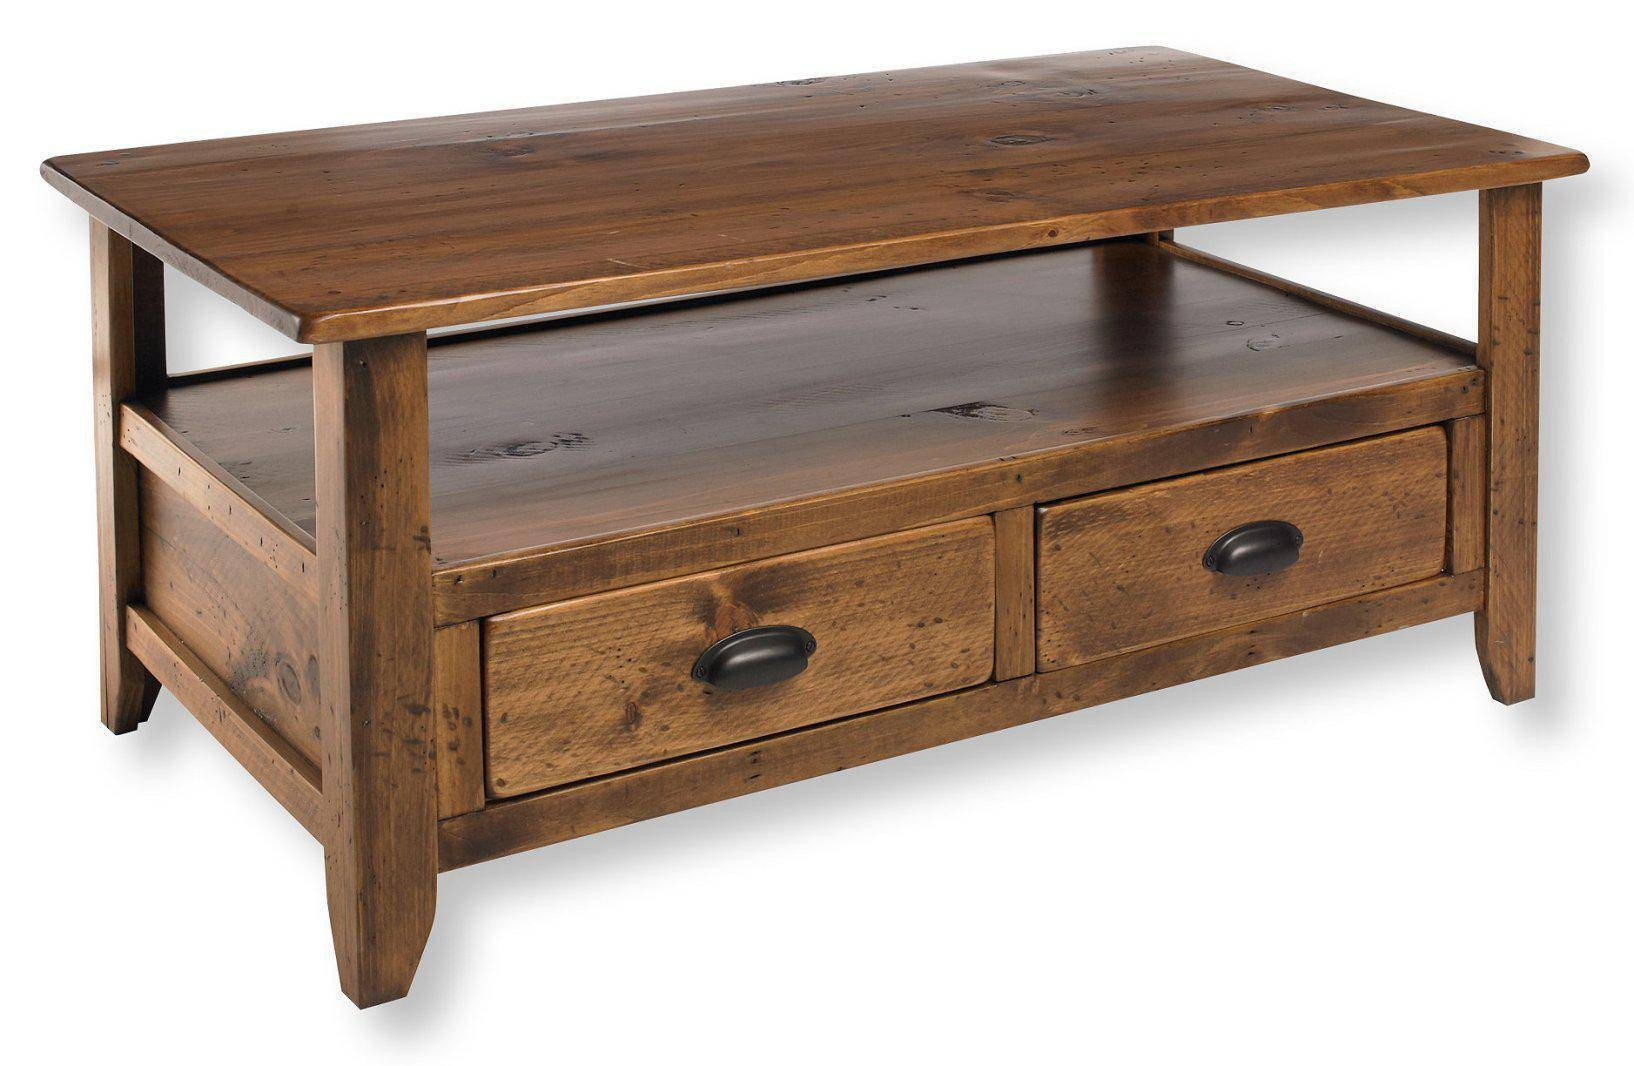 Rustic Wood Coffee Tables | Coffee Table Design inside Rustic Wooden Coffee Tables (Image 12 of 15)